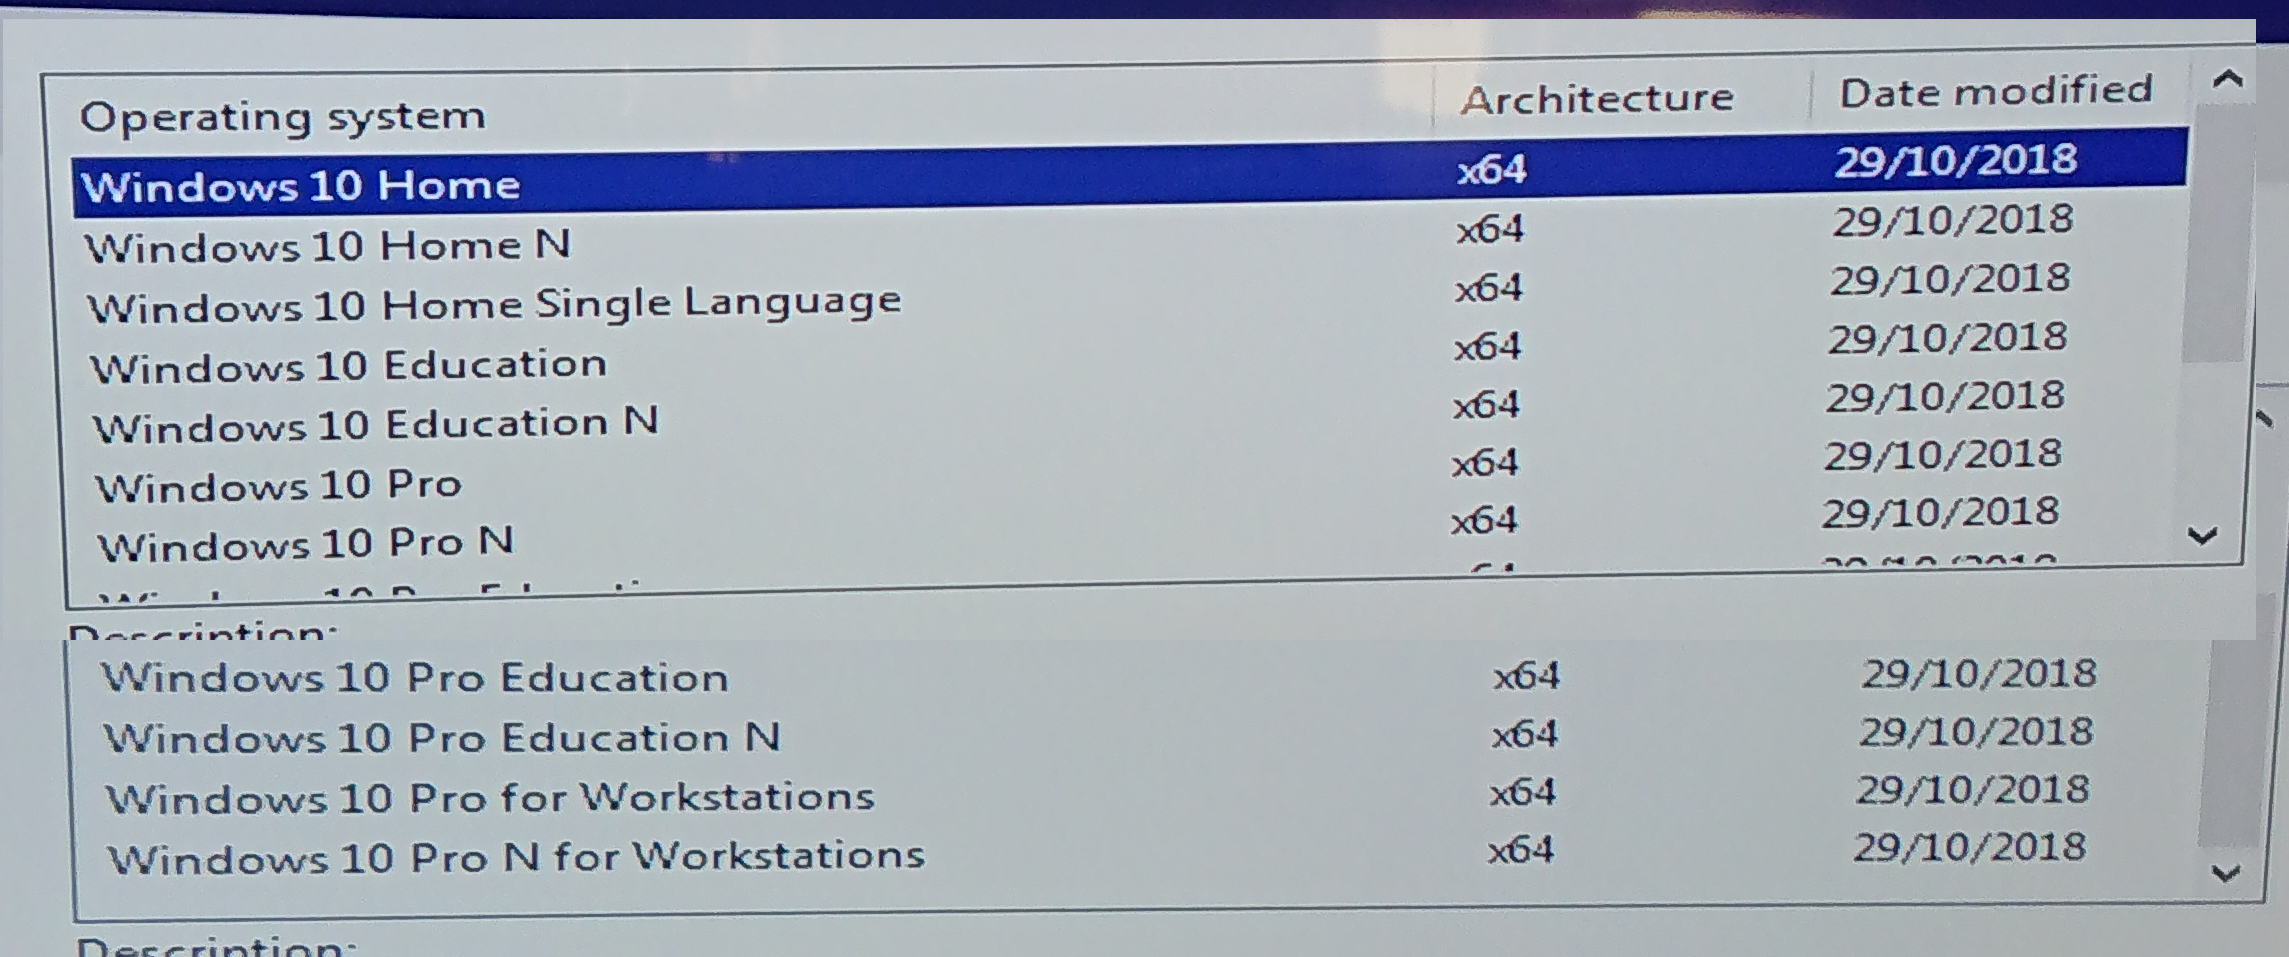 Can someone tell me which one of these is Windows 10 LTSC